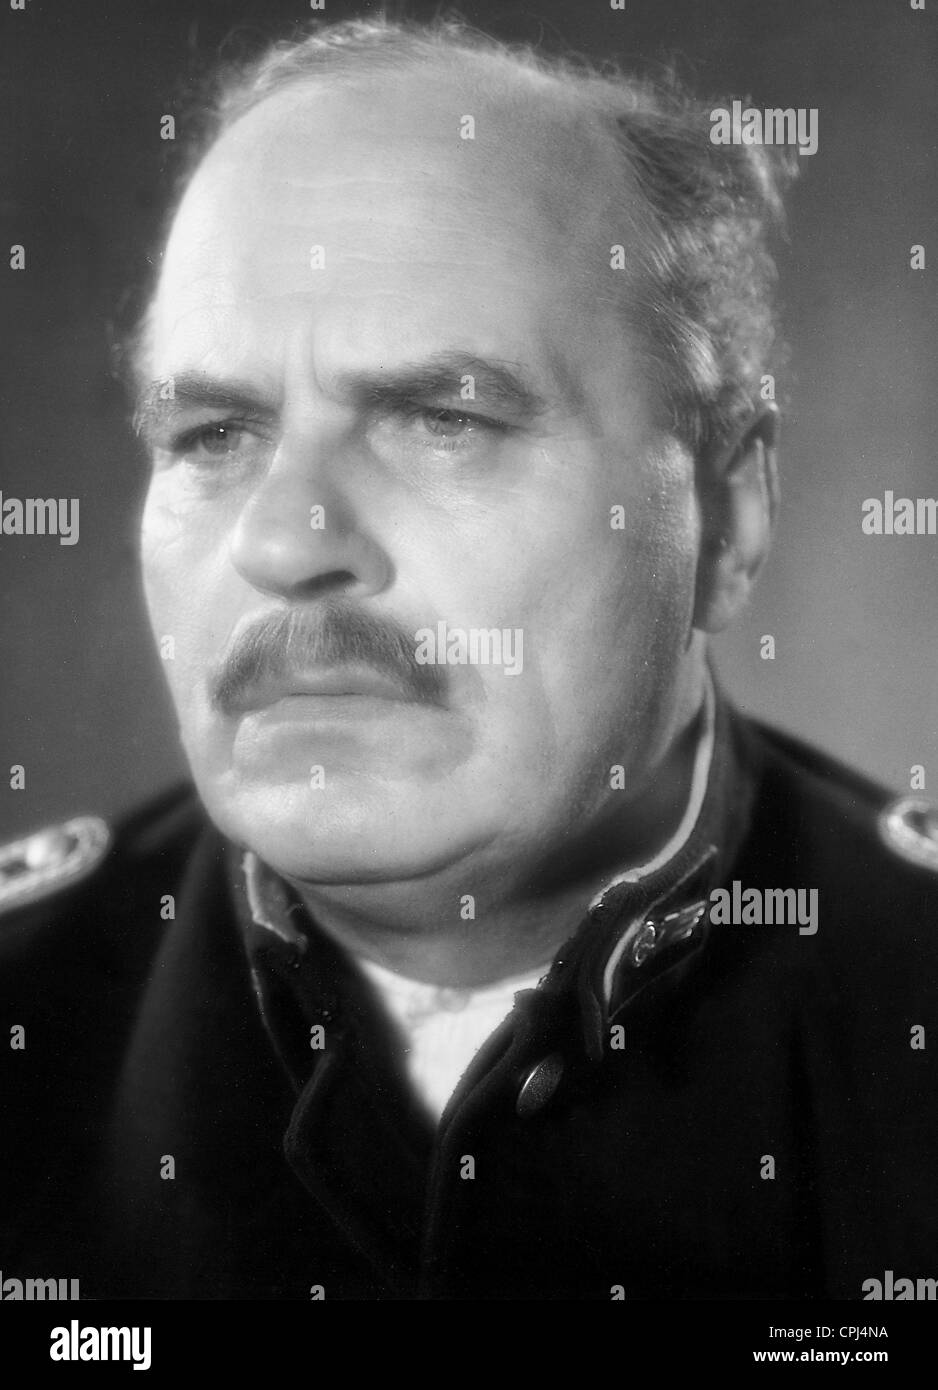 Eduard Von Winterstein In Heiratsschwindler 1937 Stock Photo Alamy